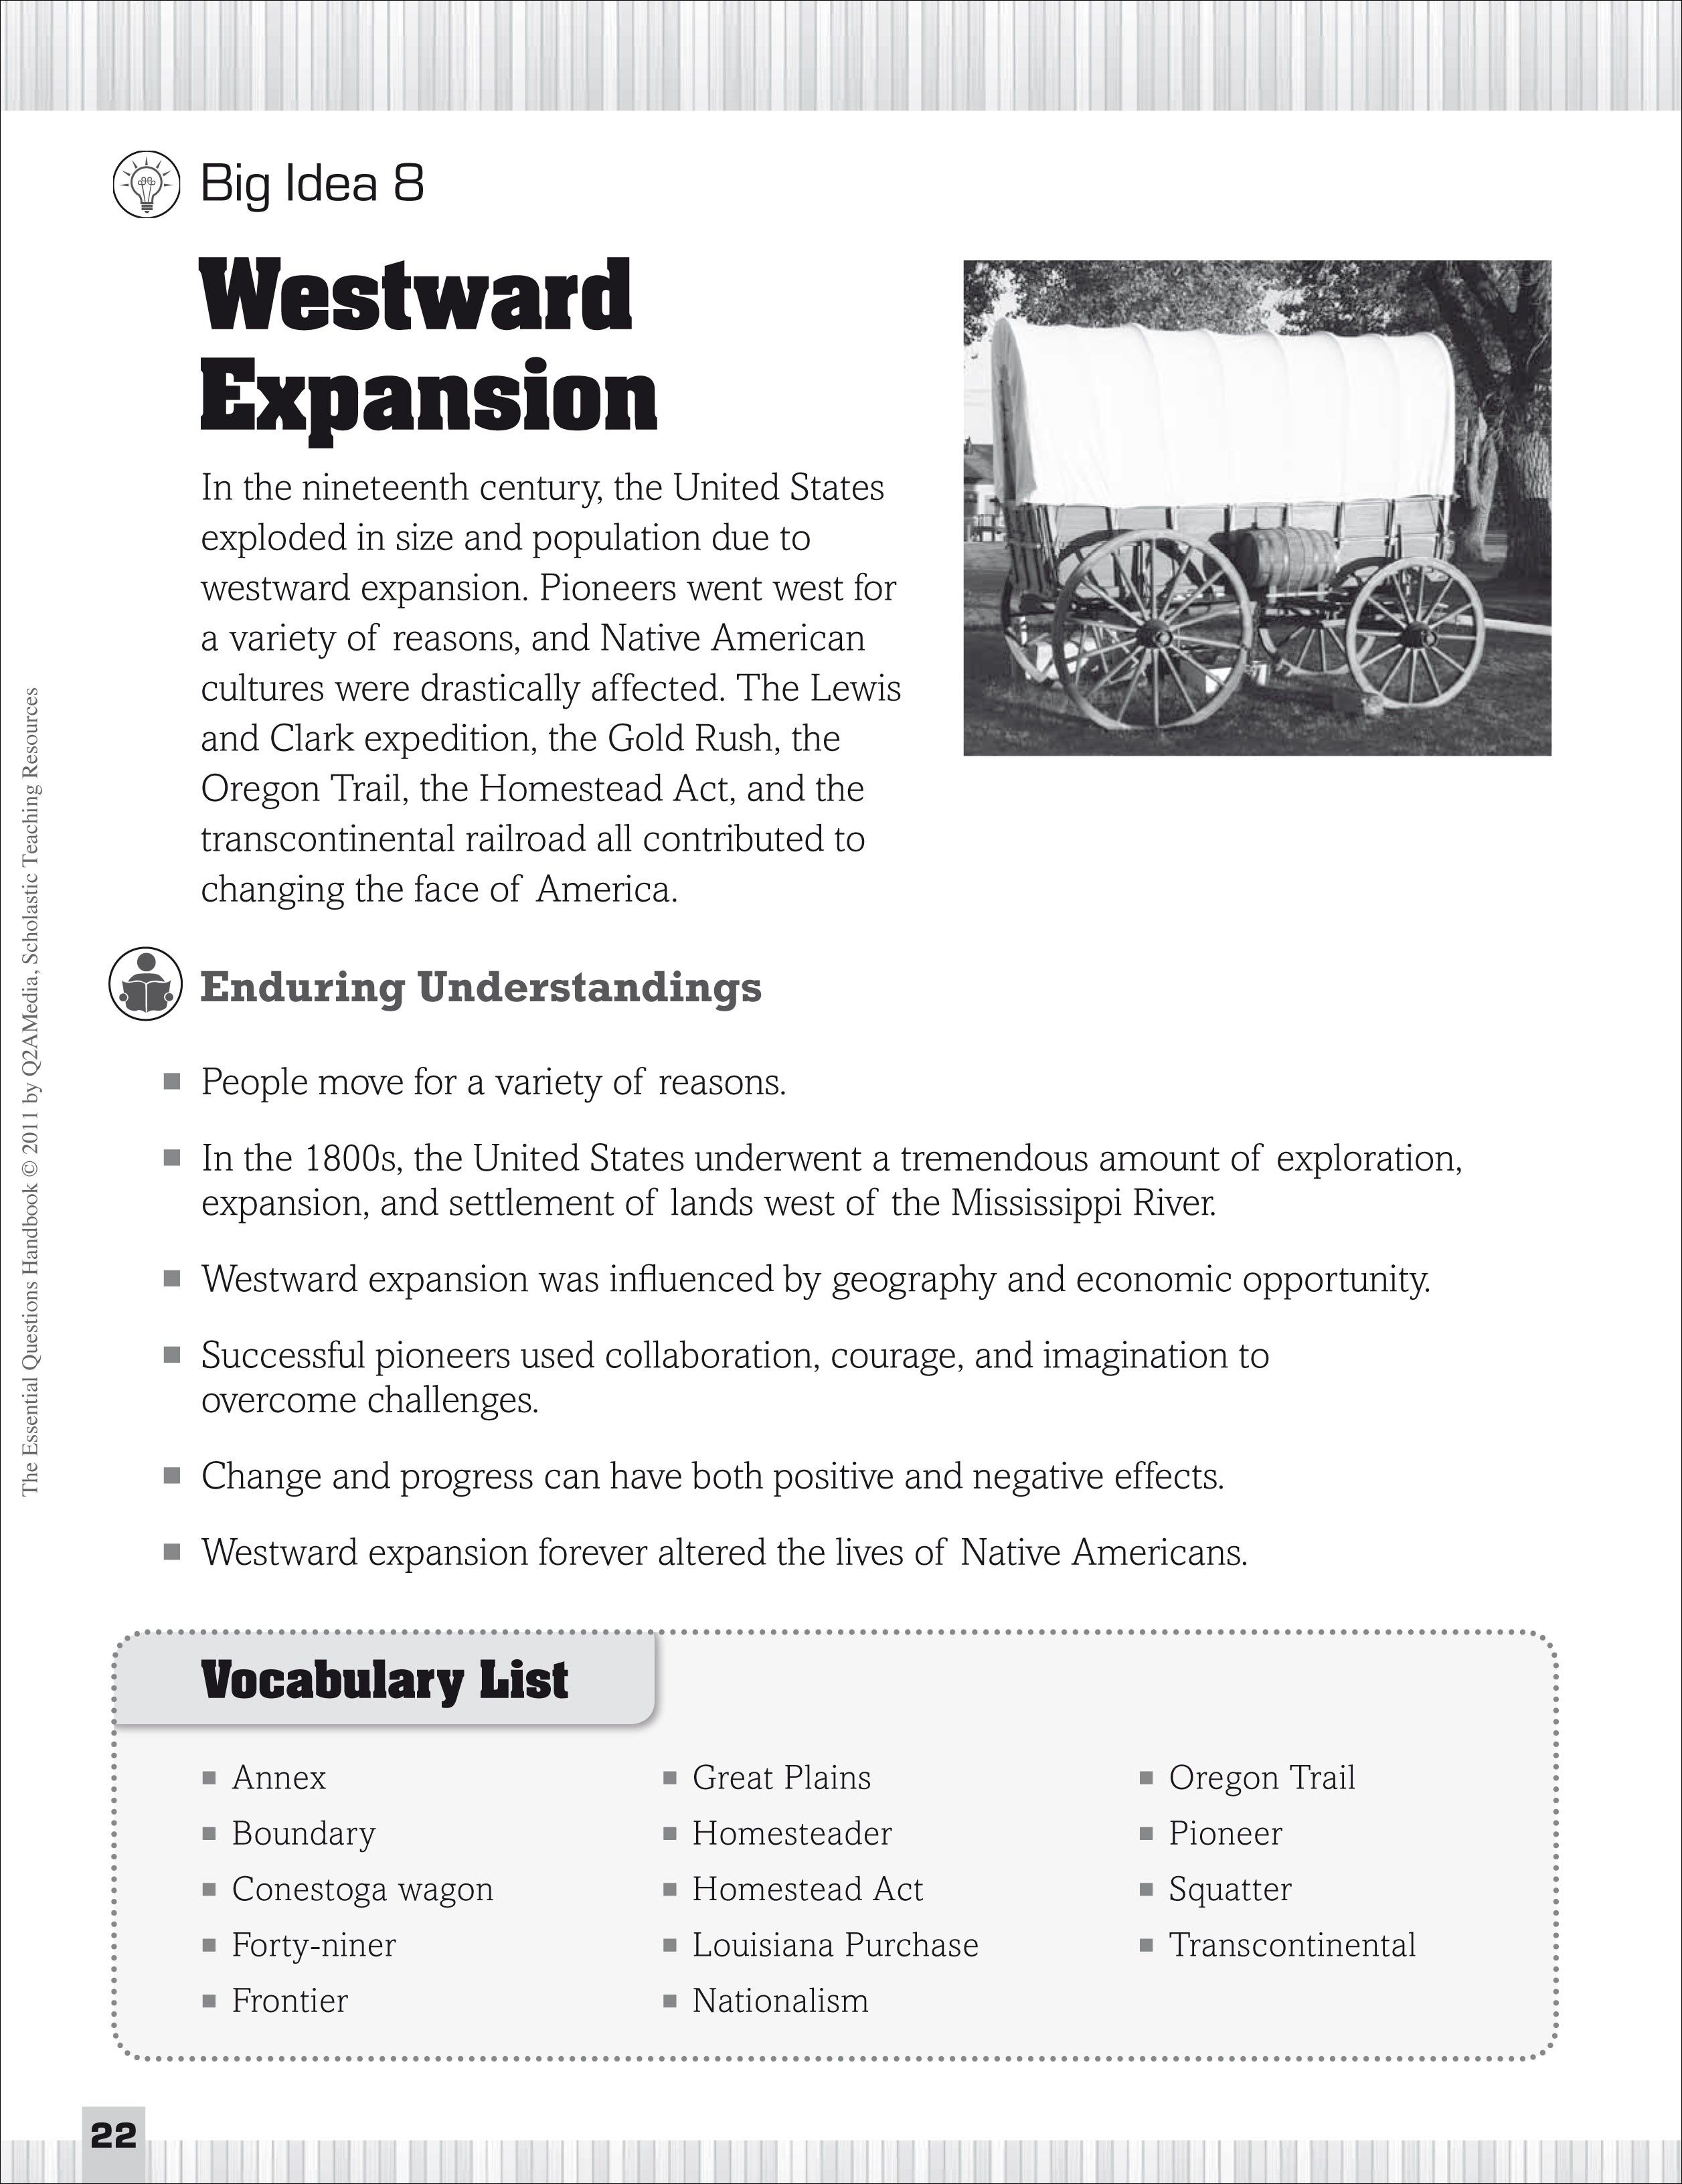 Worksheets Social Studies Reading Comprehension Worksheets westward expansion essential questions for social studies 10 teacher studies